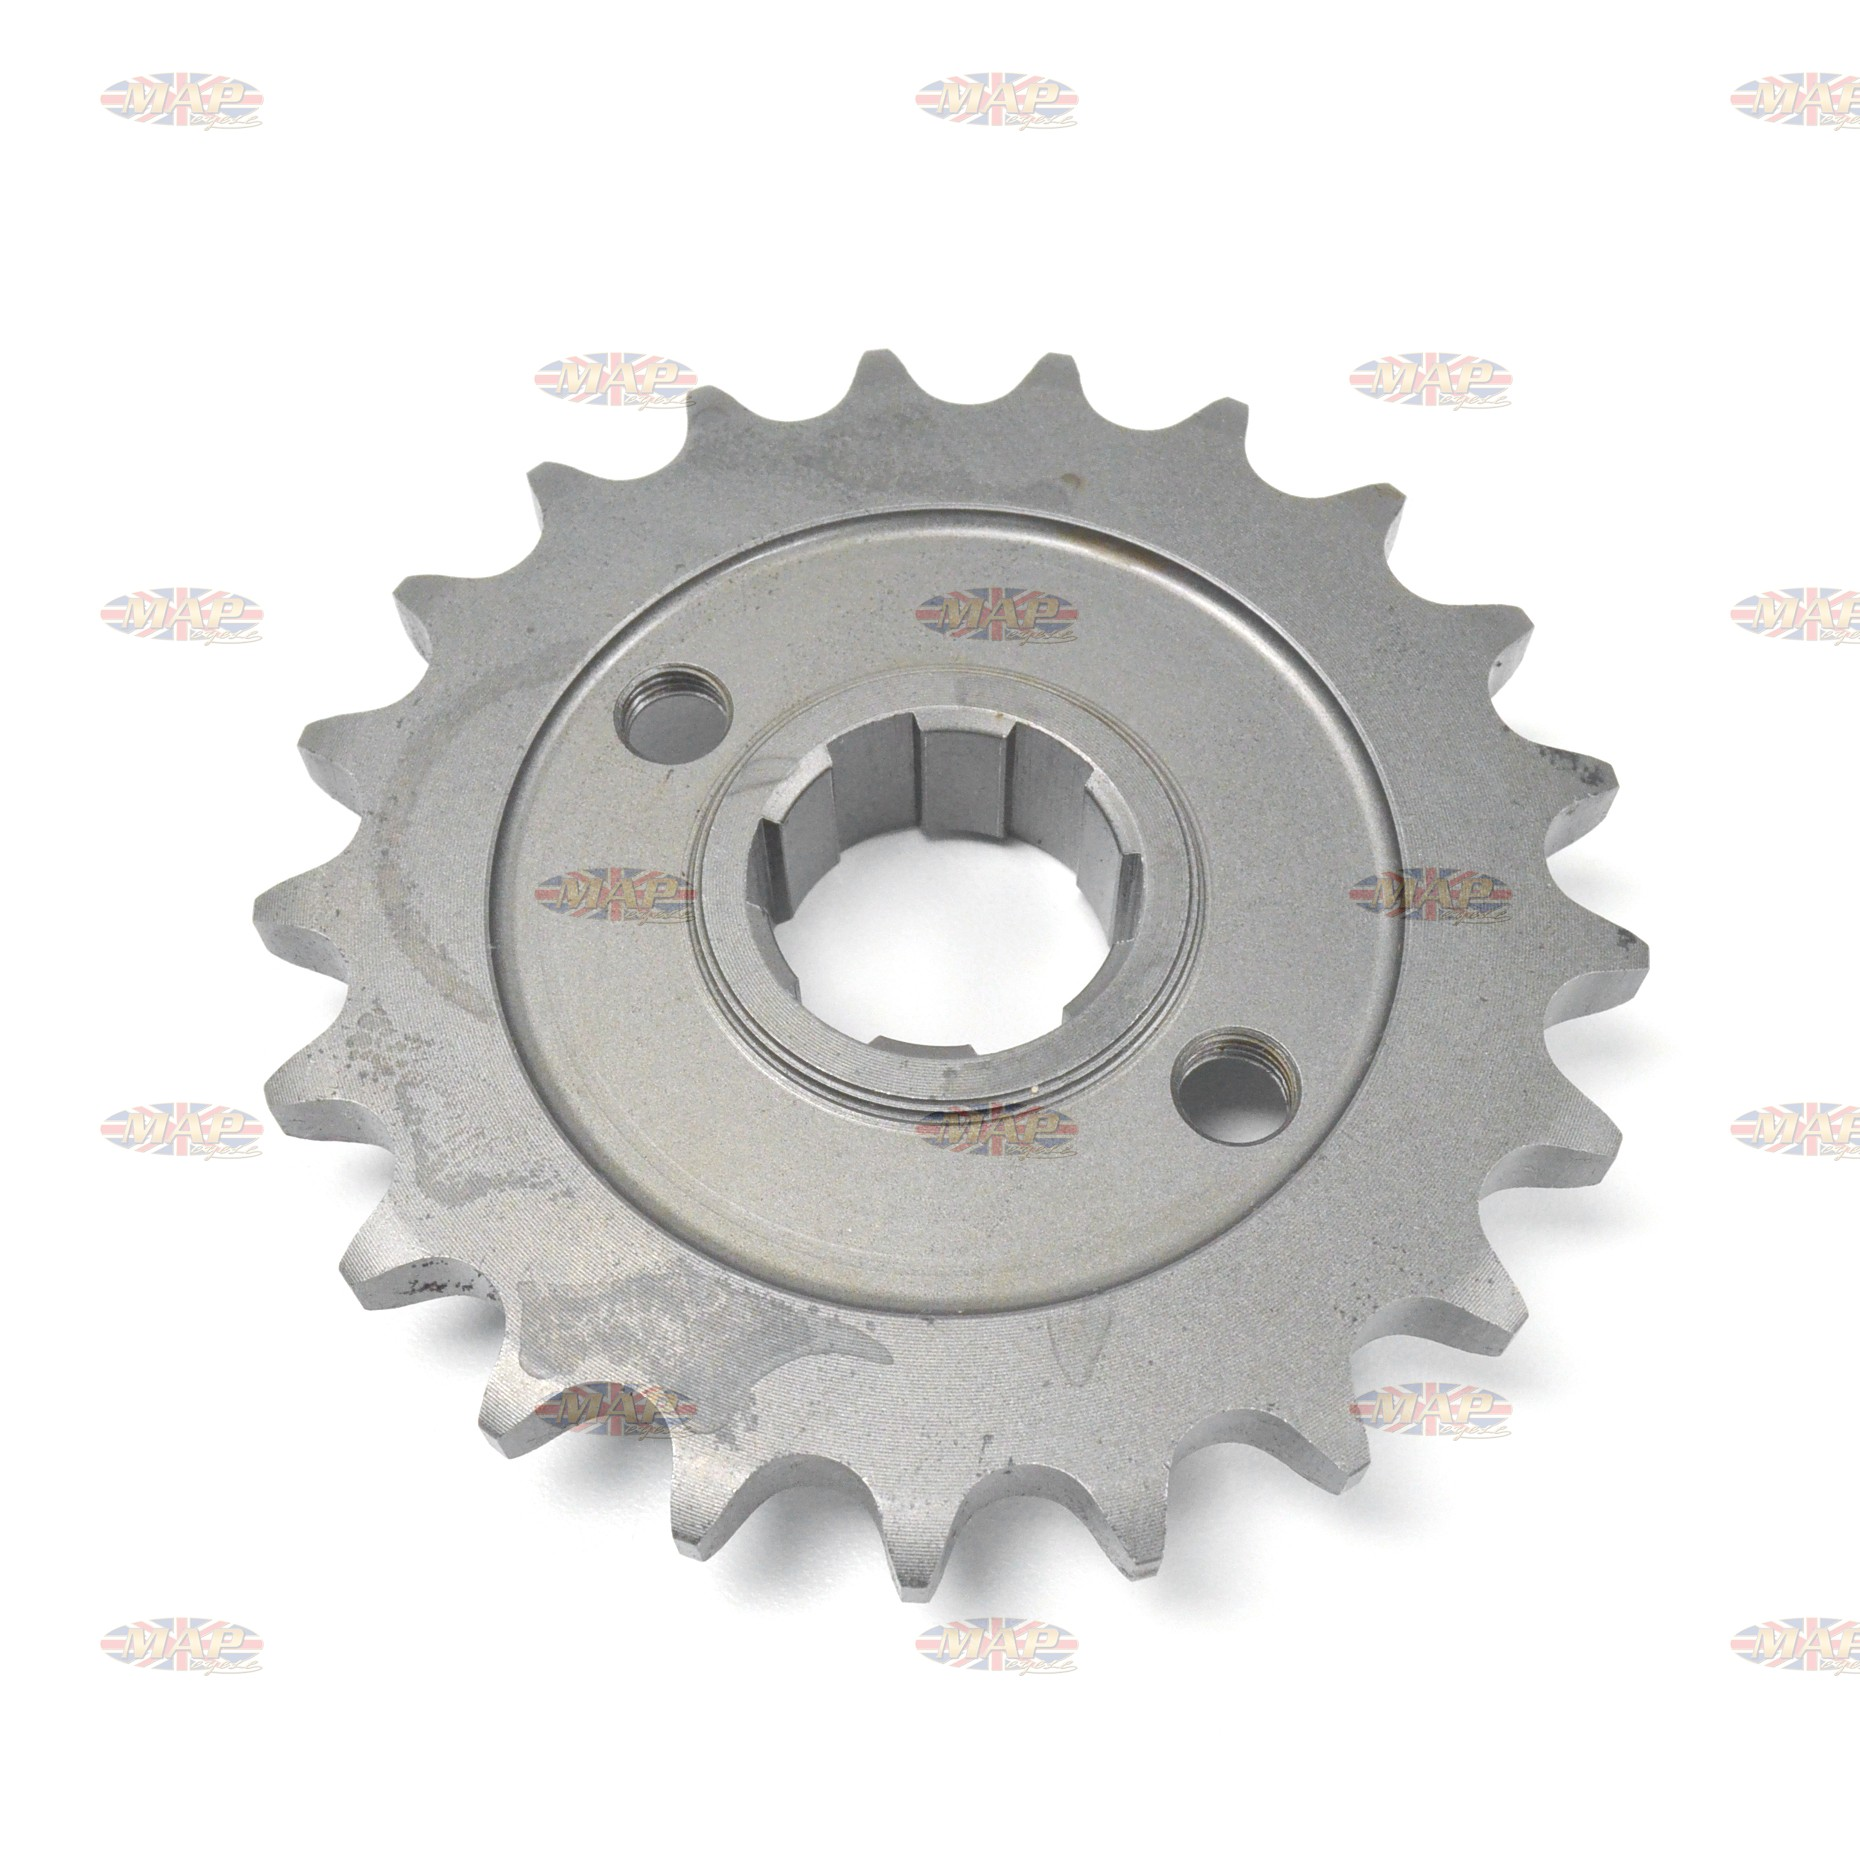 SPROCKET/ CS/ 21T (EXCELLENT PATTERN) 57-1919/21P